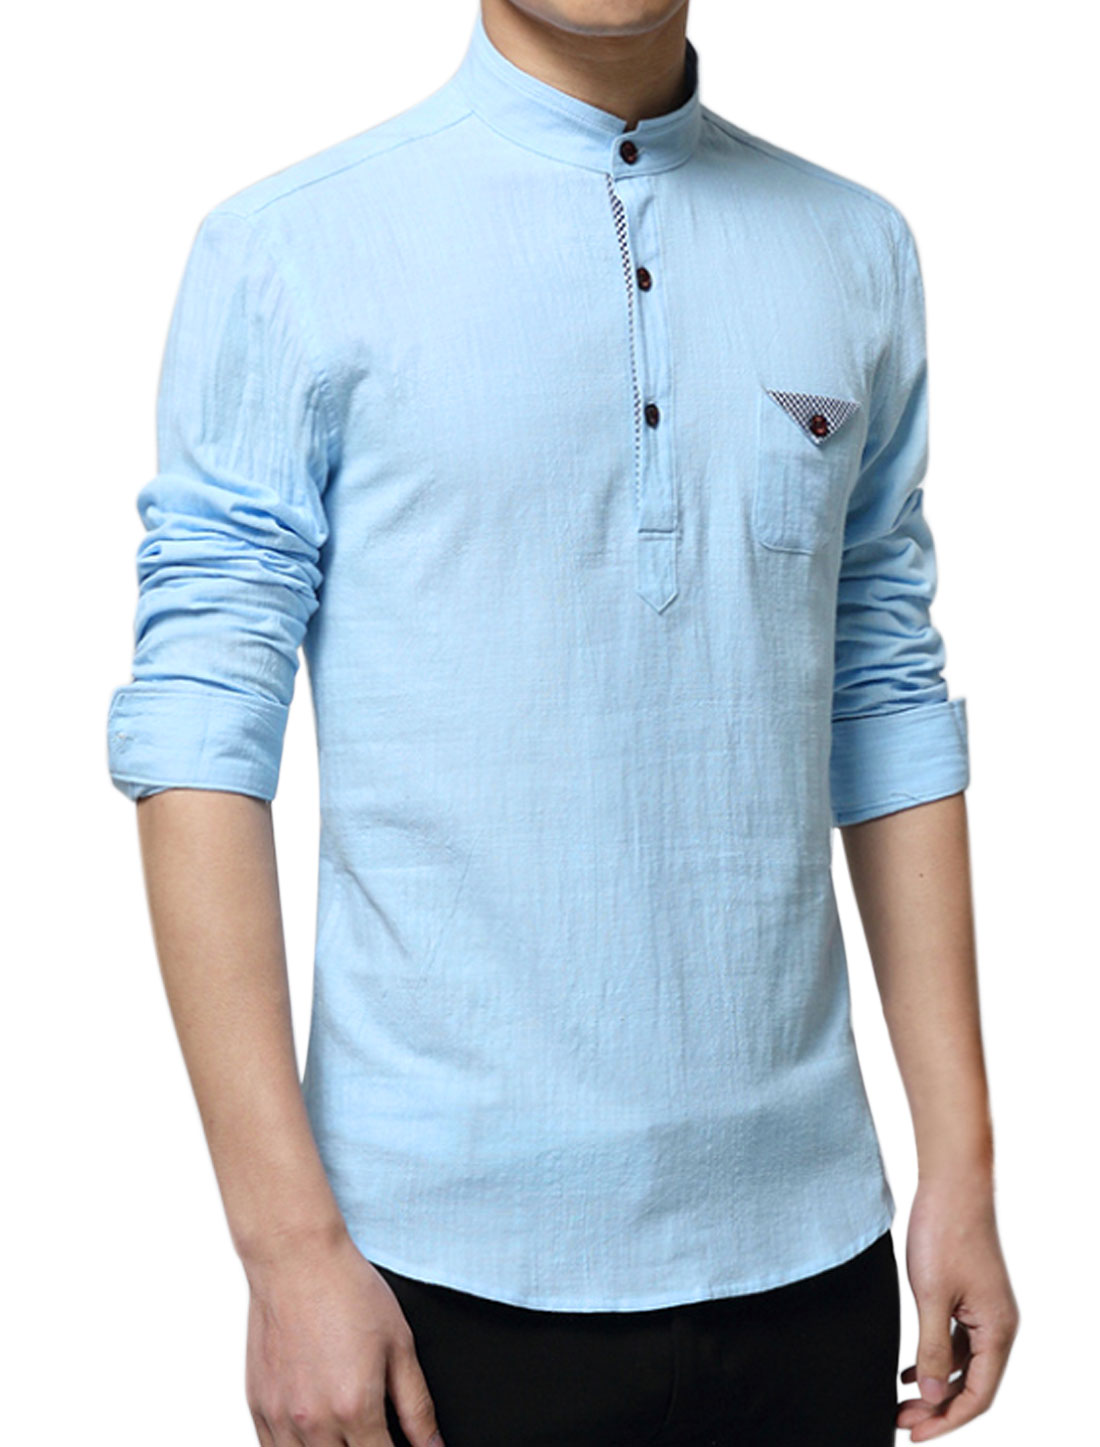 Men One Pocket Three Buttons Slim Fit Shirt Sky Blue M